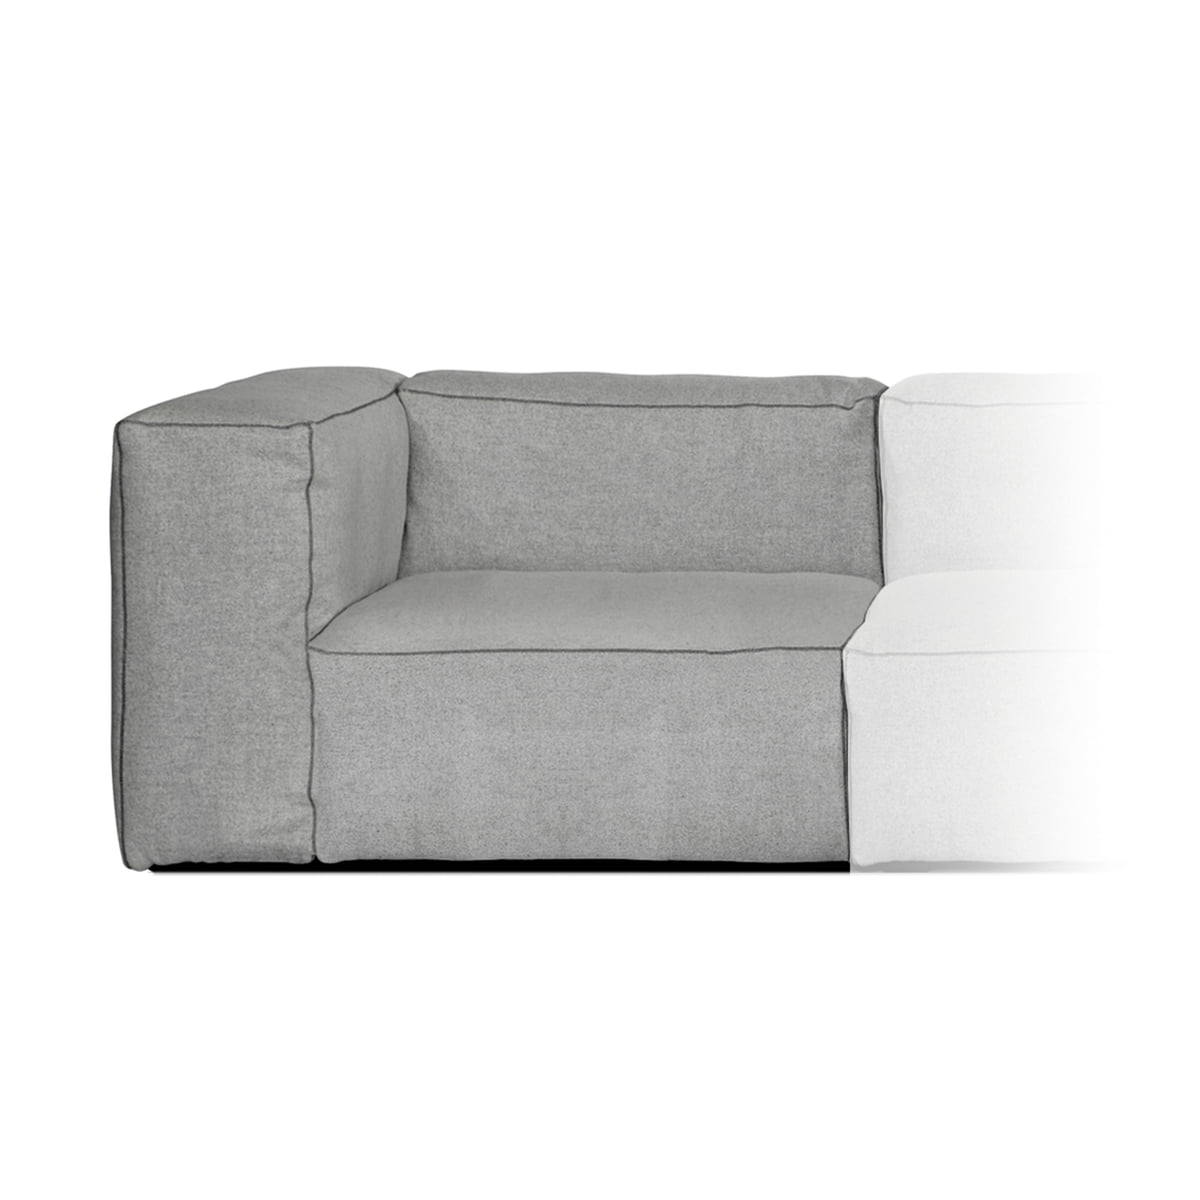 mags soft sofa module widehay